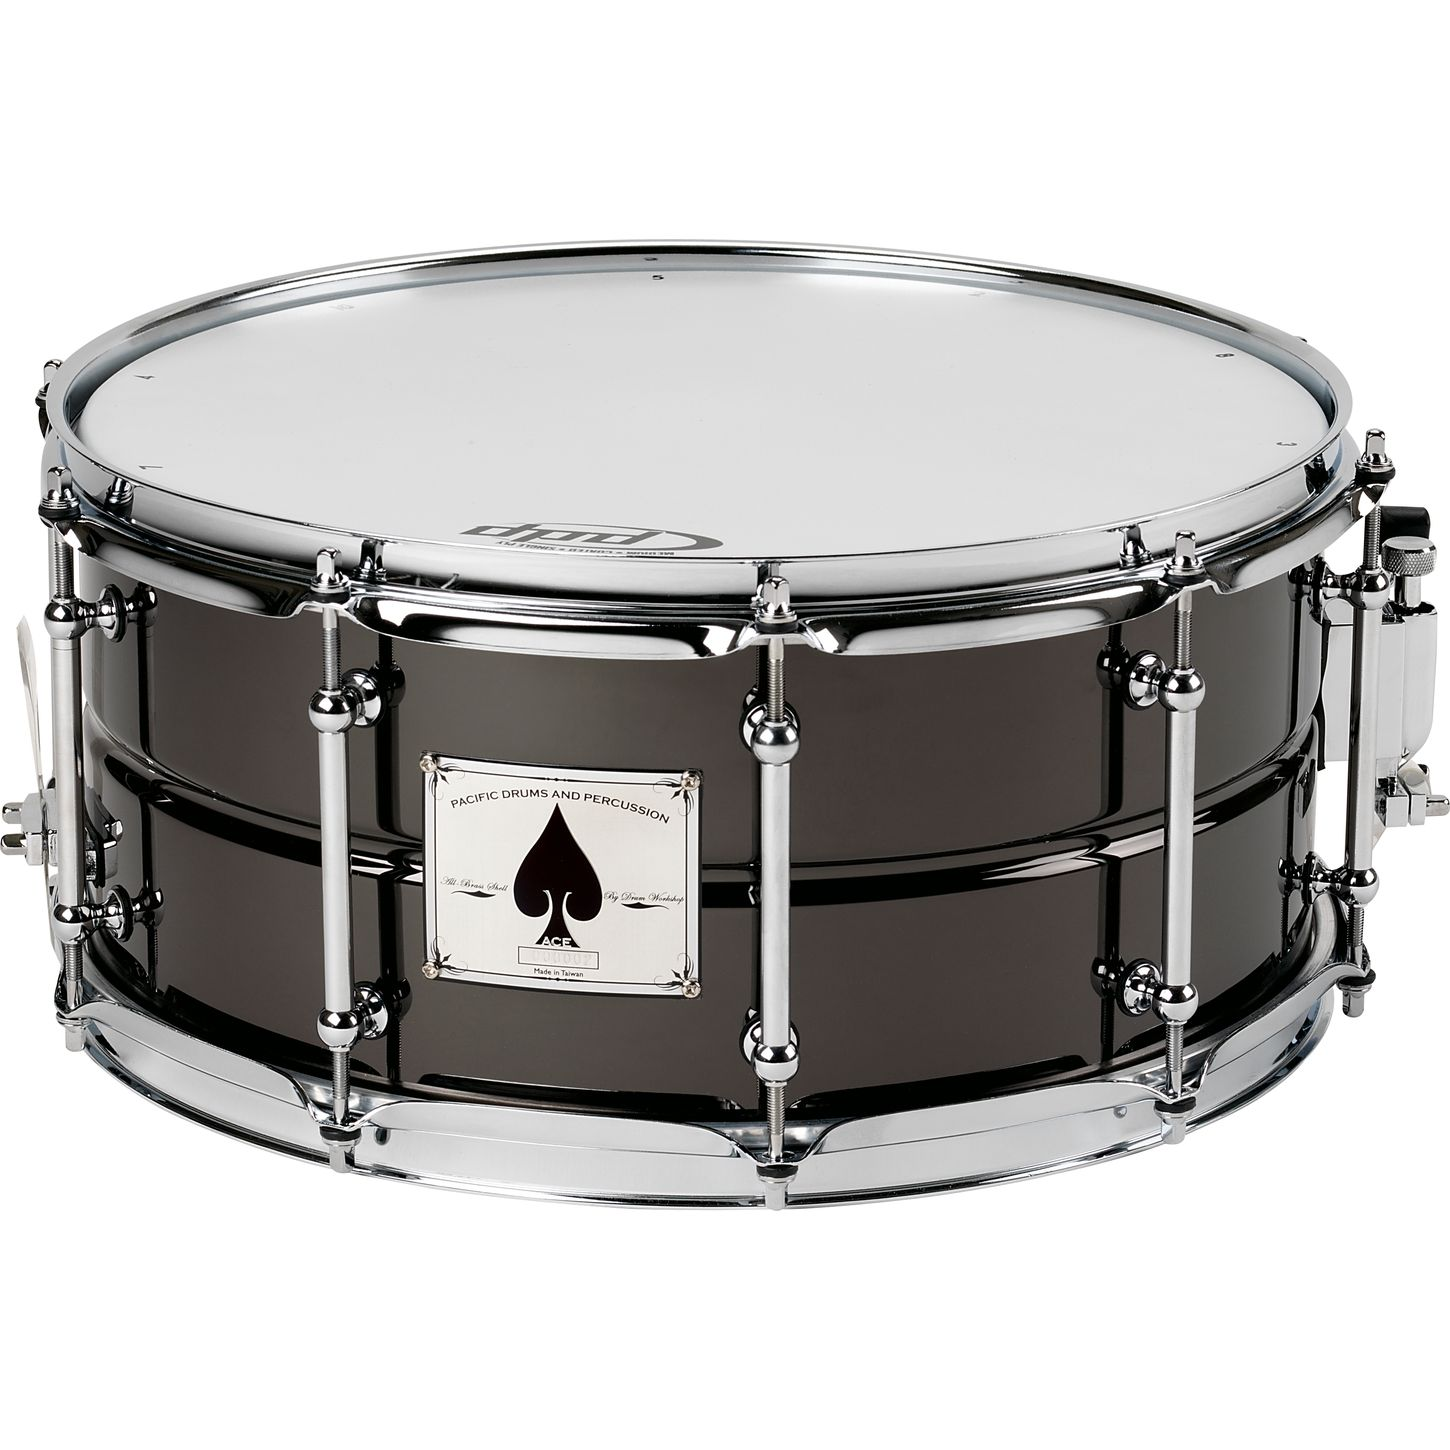 a shot reviews pdp pacific drums and percussion caisse claire the ace 6 5 audiofanzine. Black Bedroom Furniture Sets. Home Design Ideas